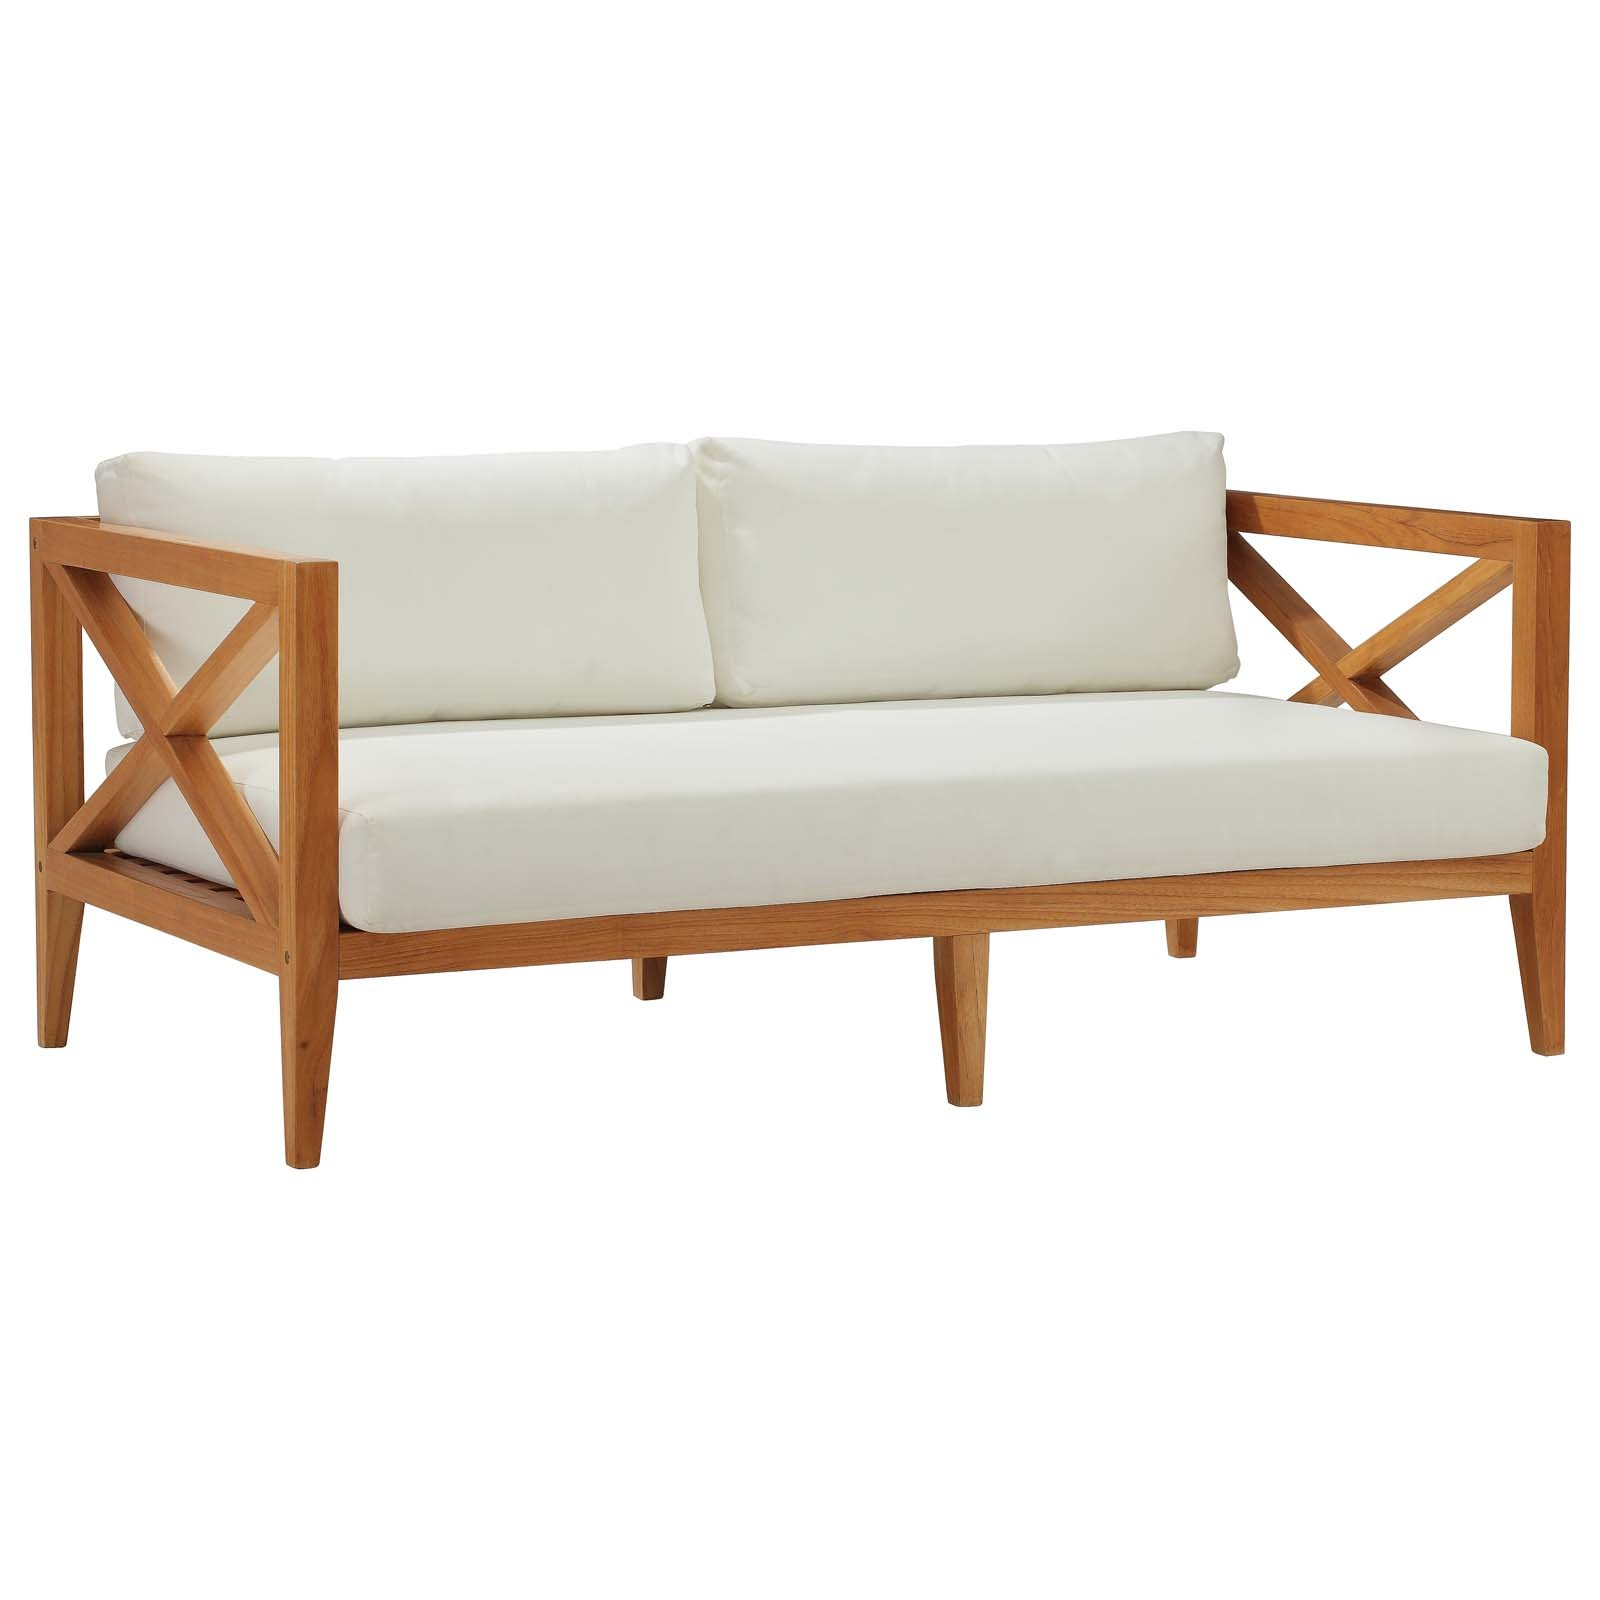 Northlake Outdoor Patio Premium Grade A Teak Wood Sofa in Natural White